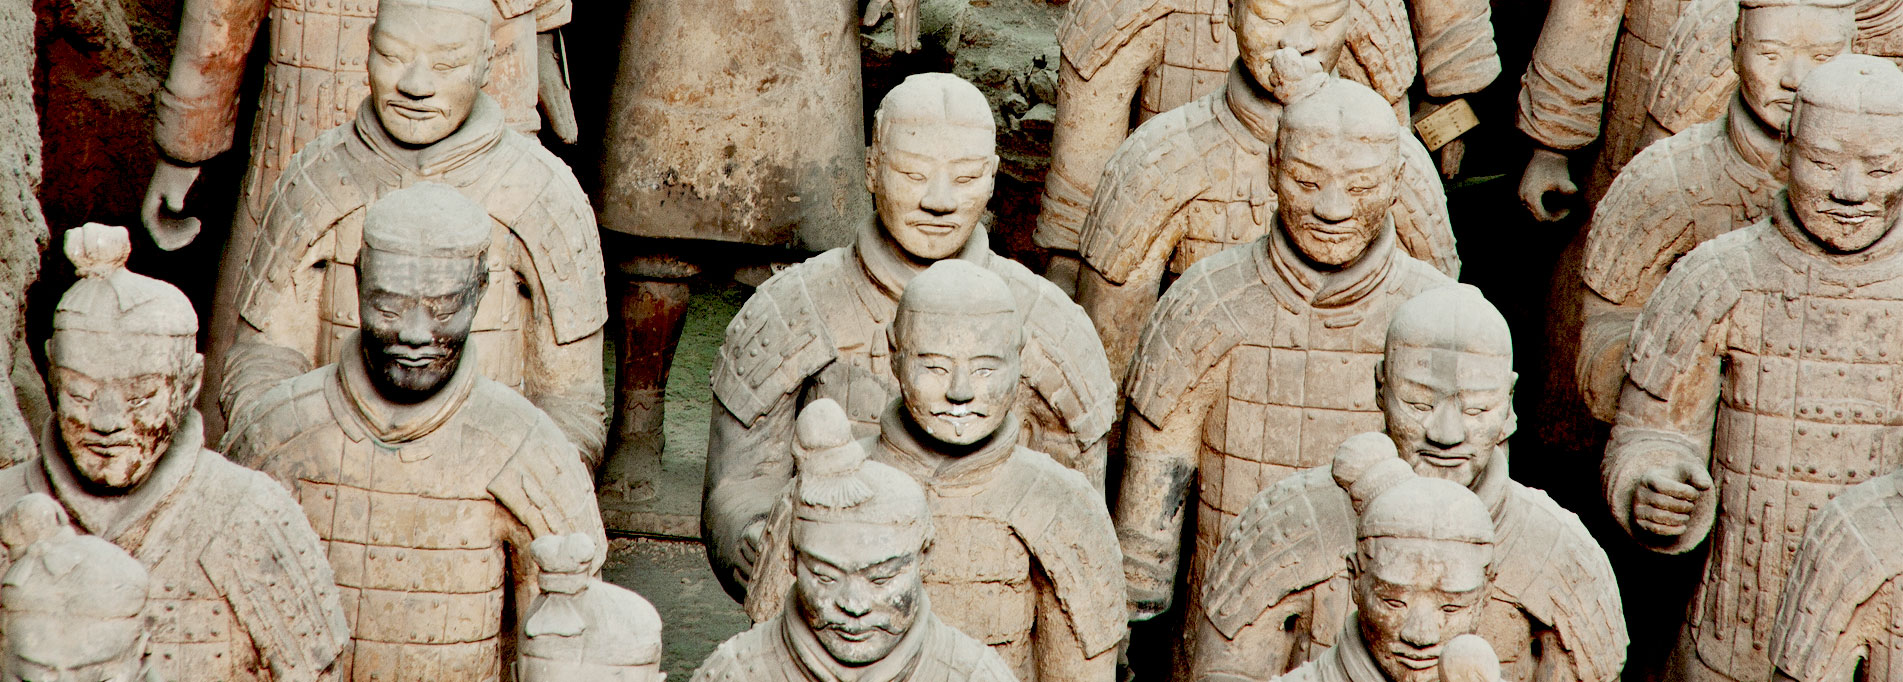 Xi'an – the ancient capital of China